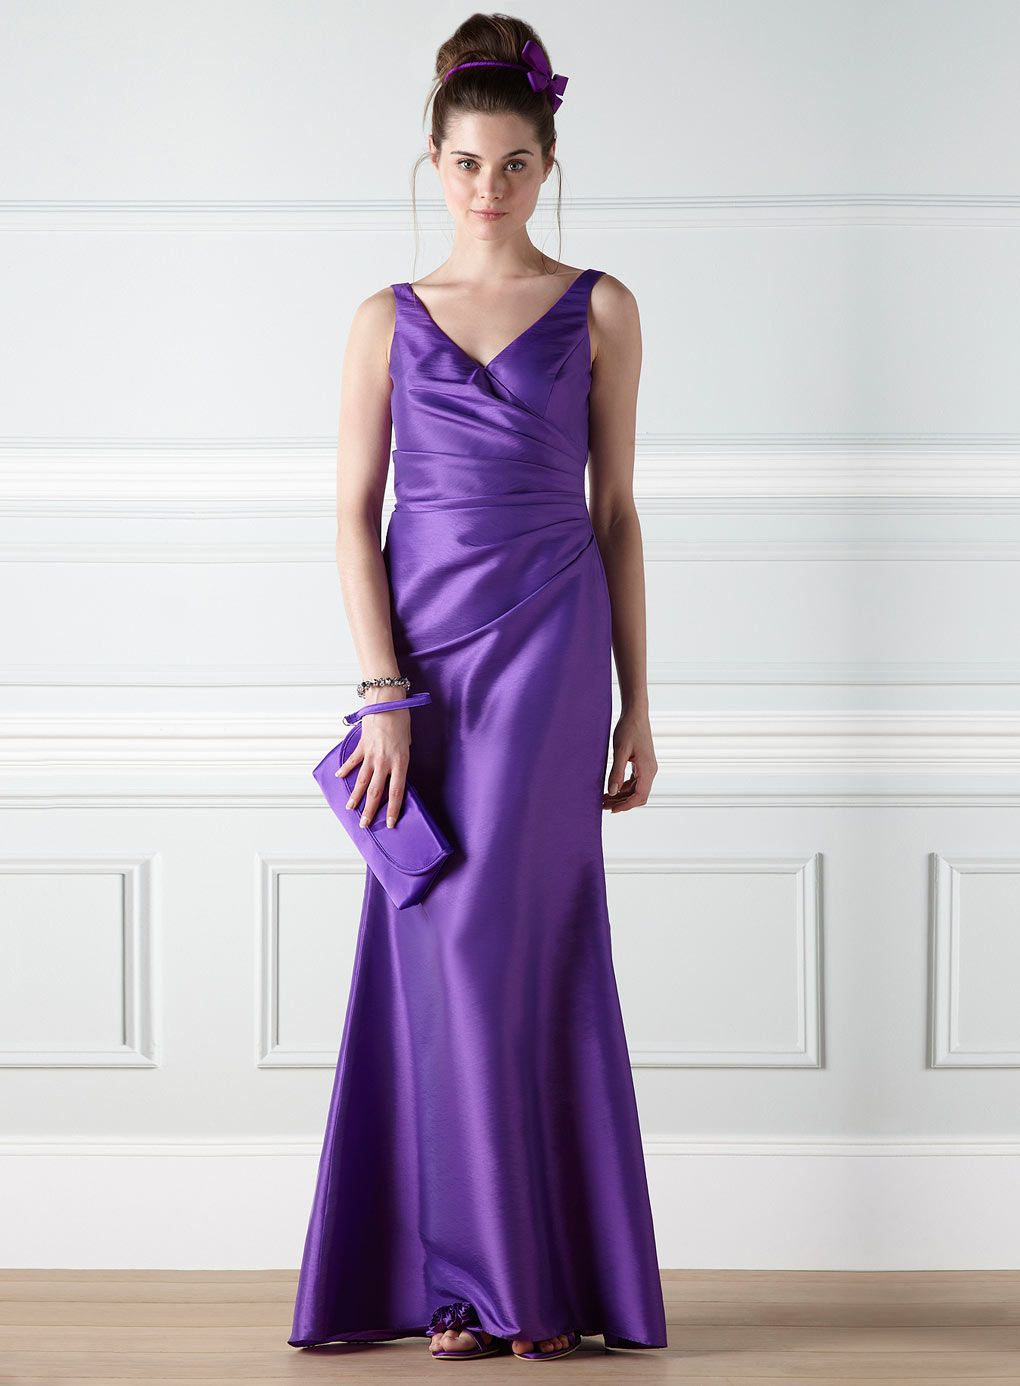 purple-bridesmaid-dress-and-shoes-1-2 | Purple Bridesmaid Dress ...